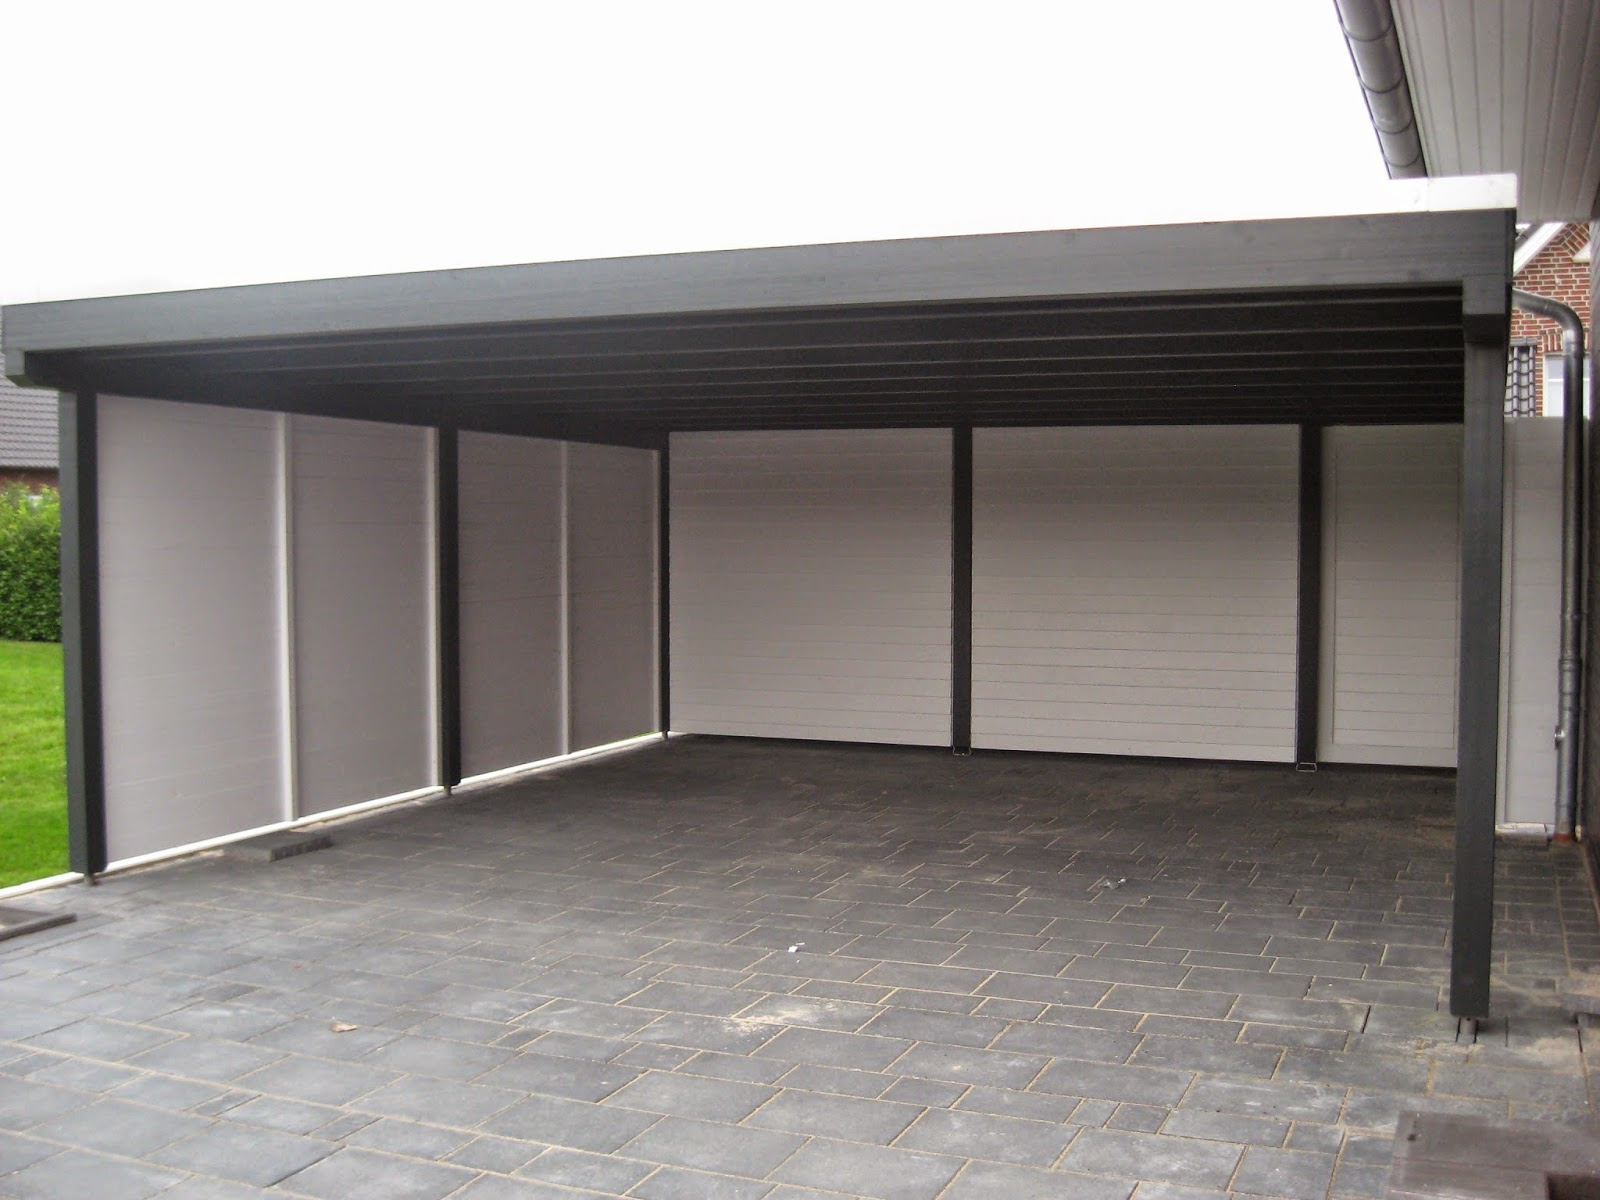 build unser bautagebuch das carport steht. Black Bedroom Furniture Sets. Home Design Ideas